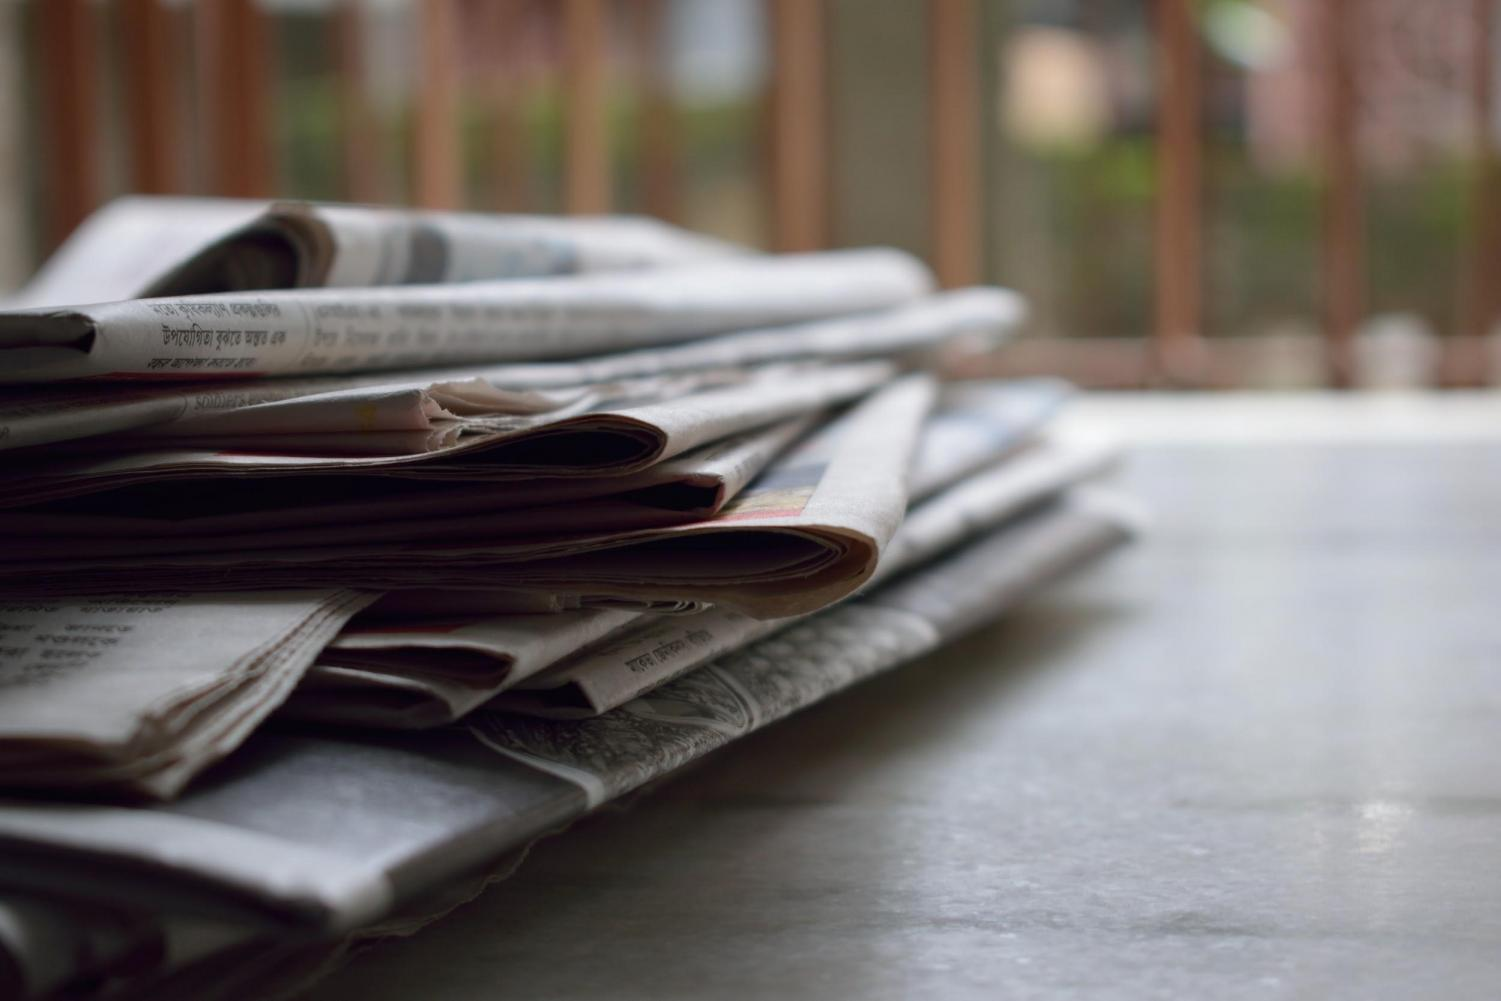 Print journalism was the start of mass media, but the newspaper is becoming increasingly irrelevant in favor of other sources, such as online news.